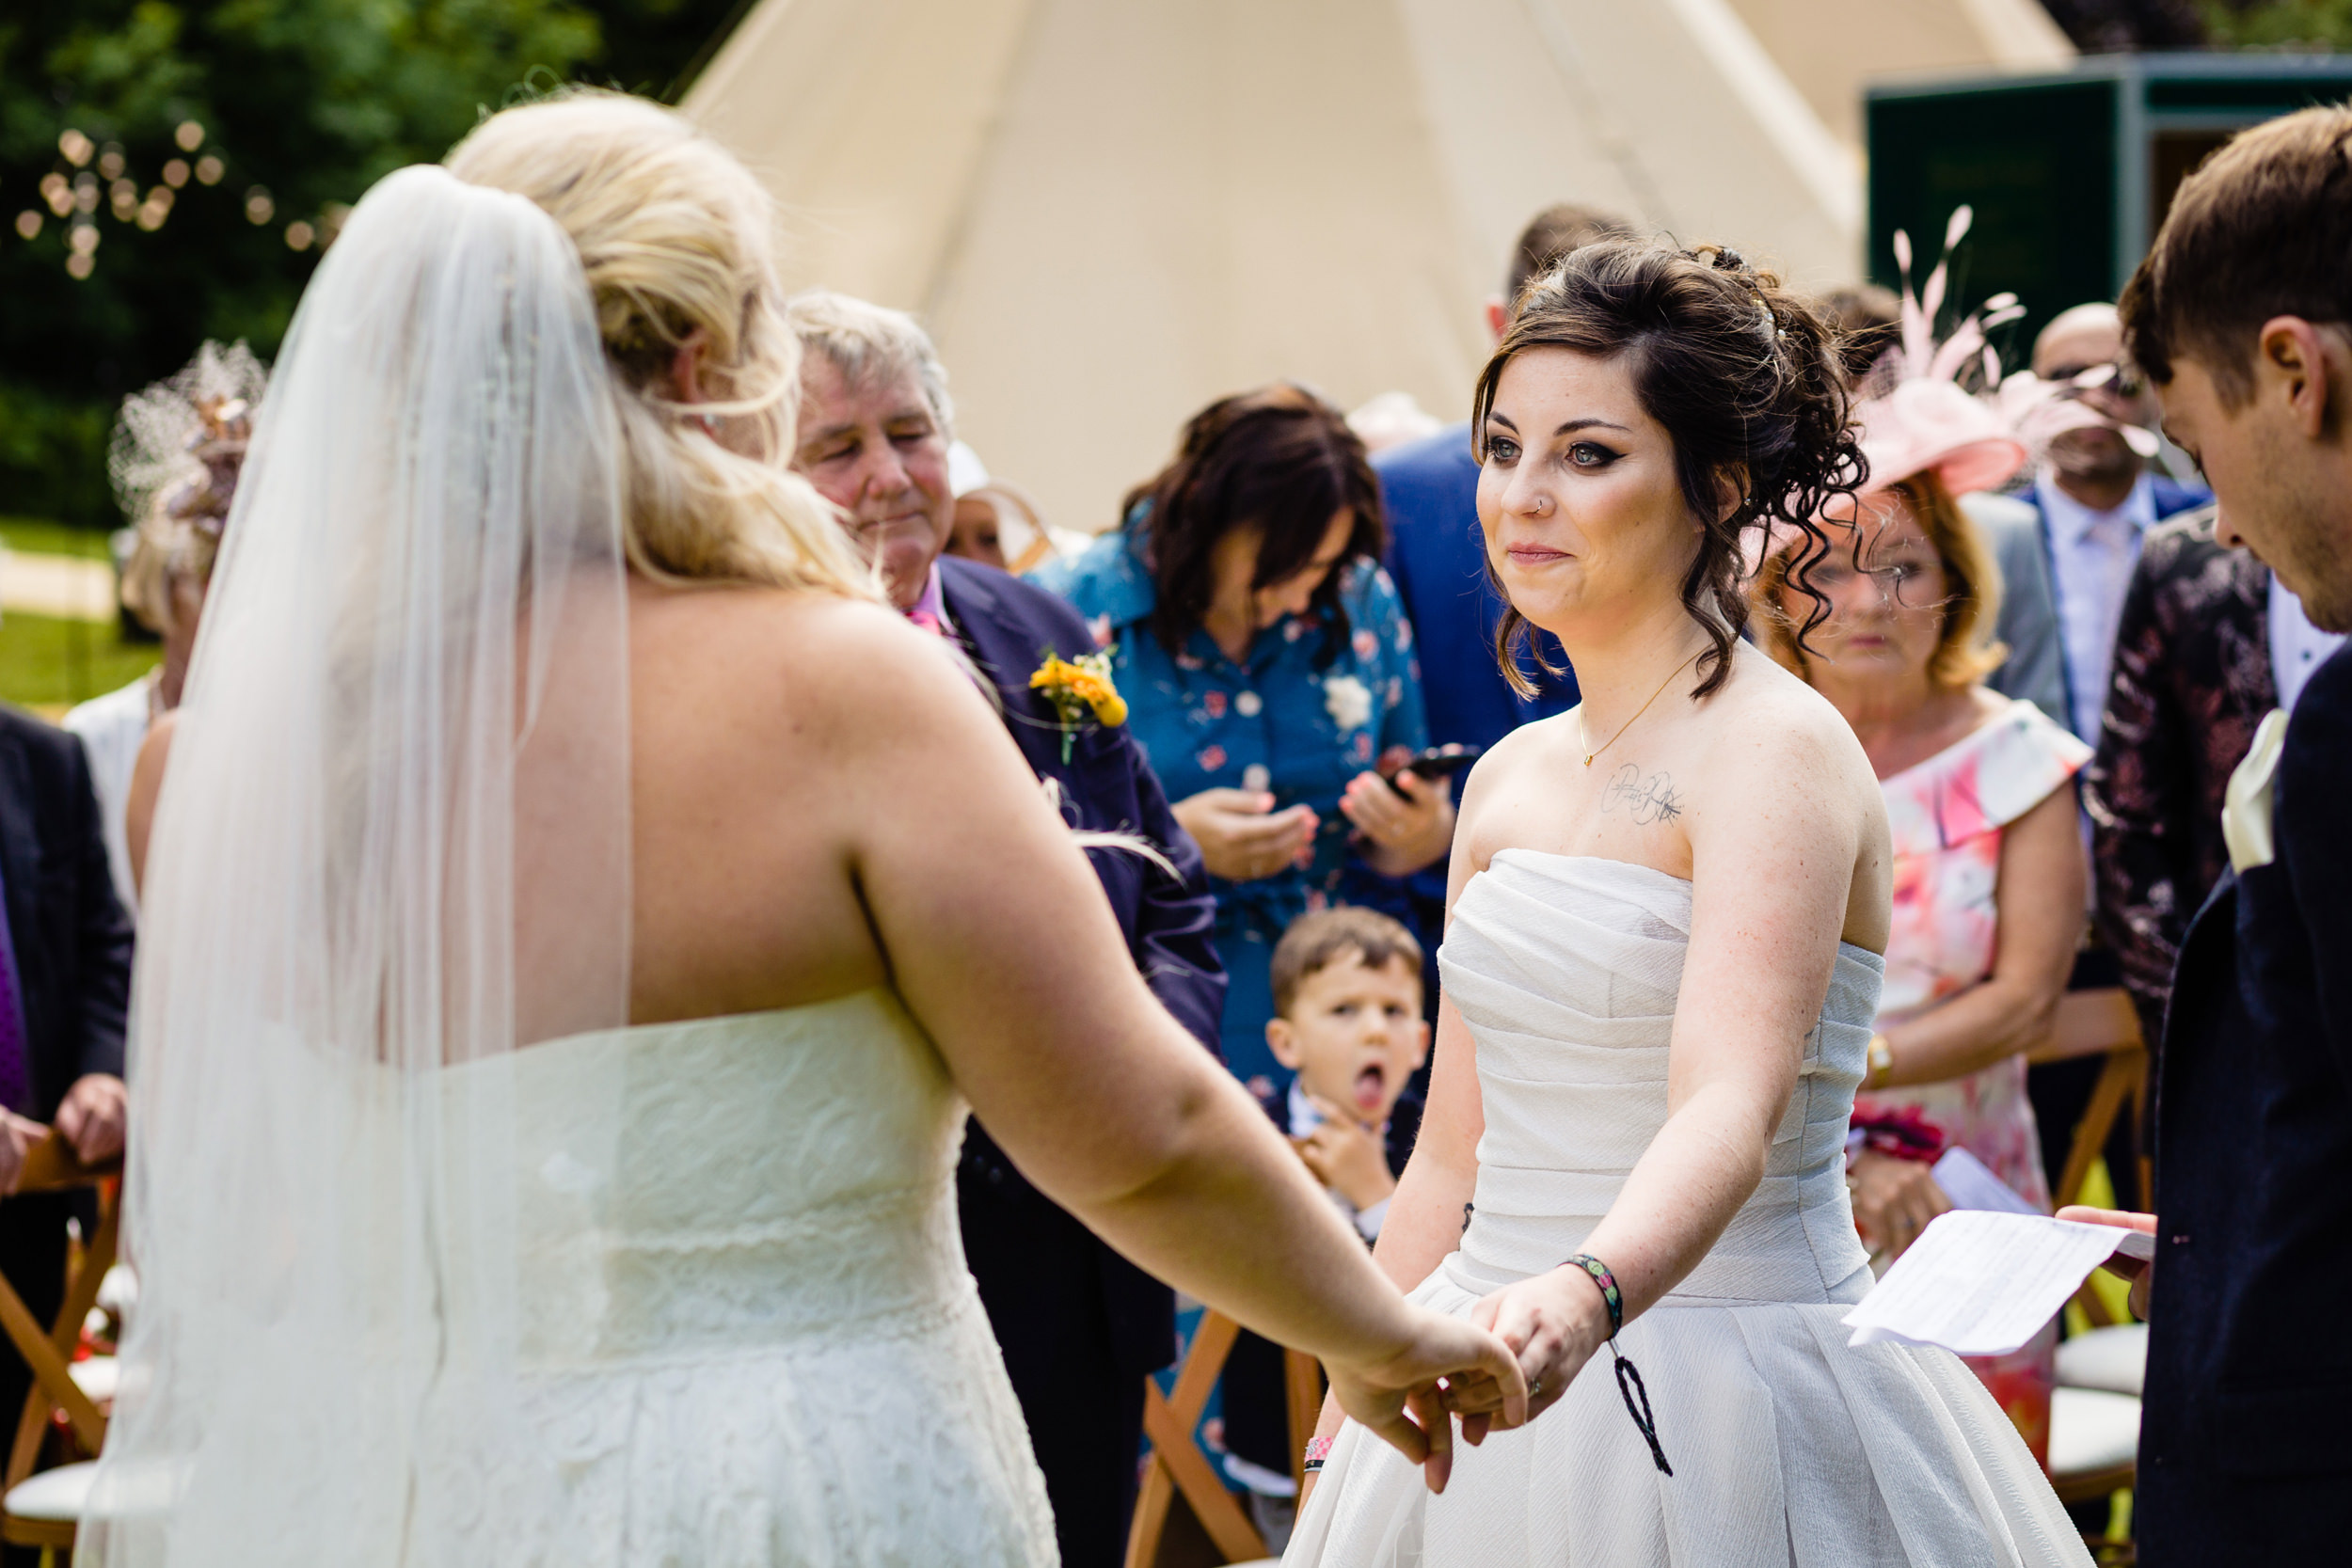 bride looking lovingly at her soon to be wife in the ceremony. plough inn, hathersage wedding photography by emma and rich.